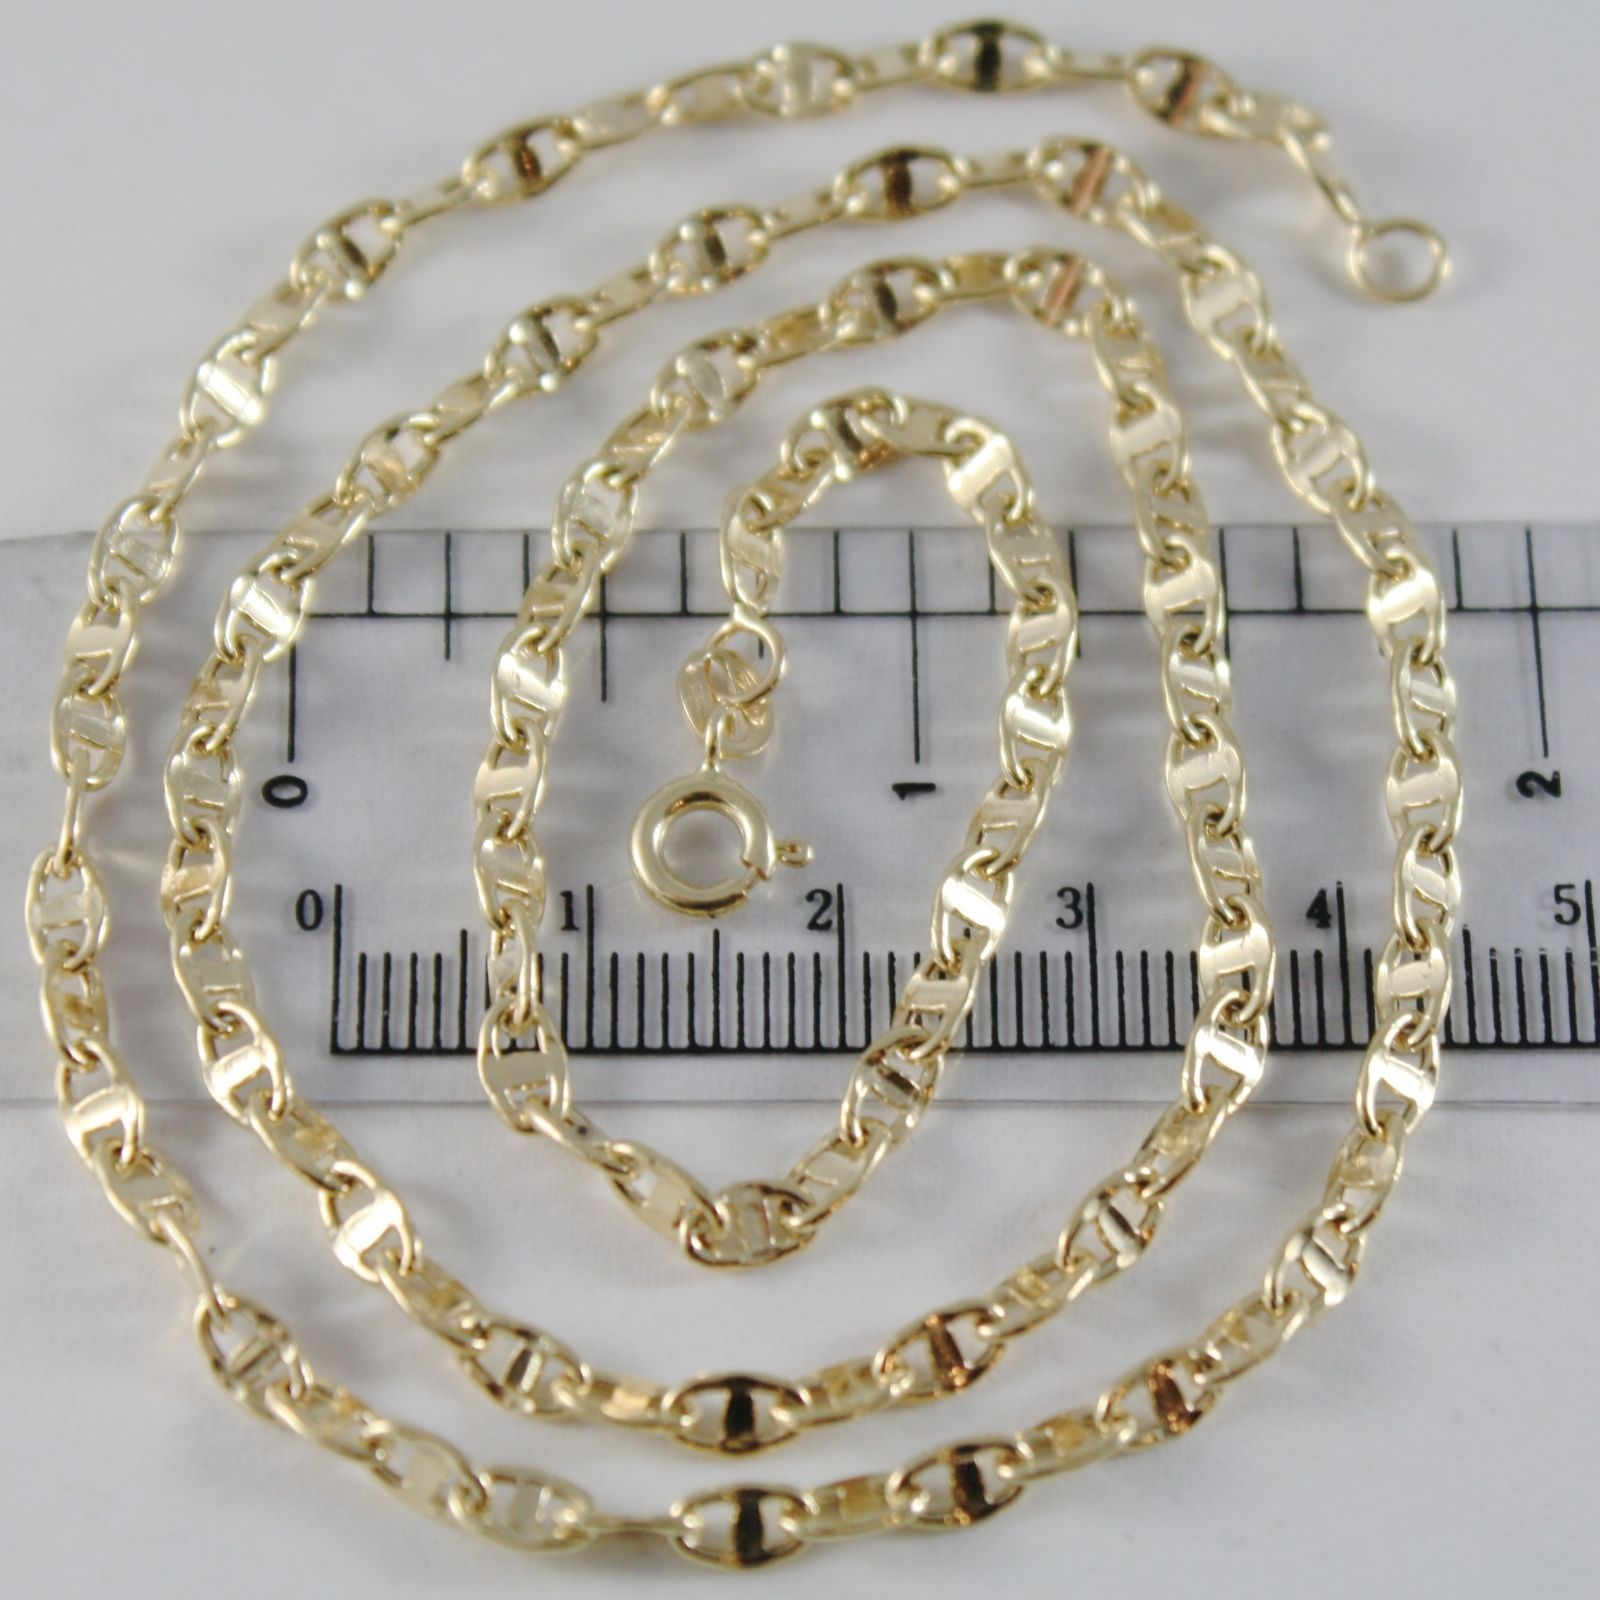 18K YELLOW GOLD CHAIN 3.8 MM FLAT NAVY MARINER LINK 19.70 INCHES MADE IN ITALY